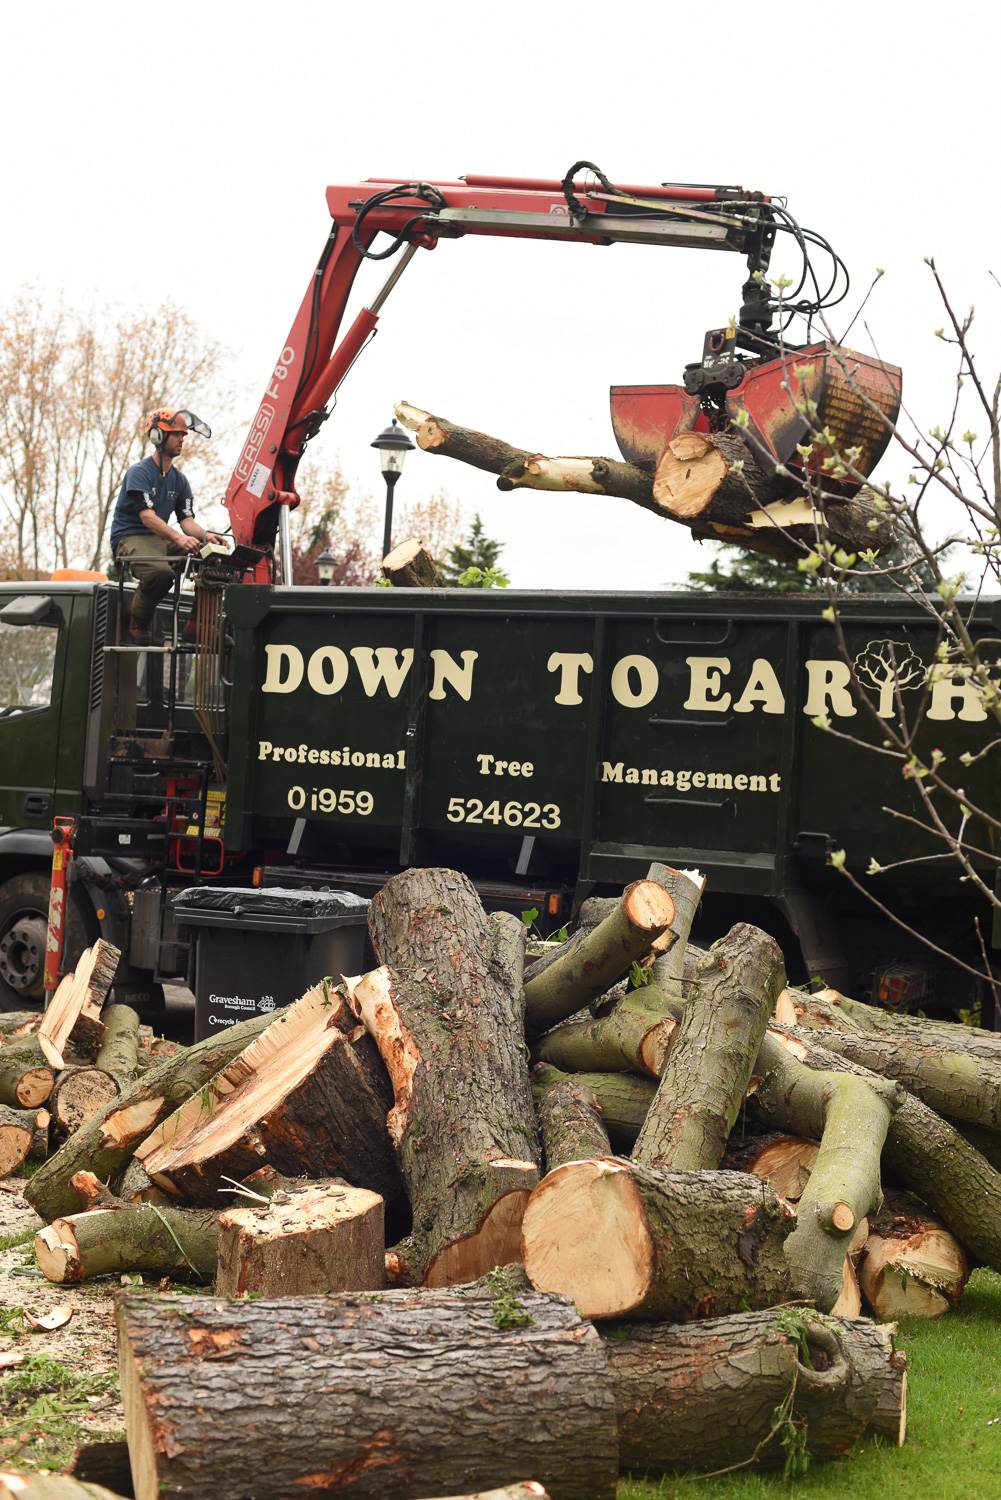 Tree Surgeon and Maintenance Services in Chelsfield